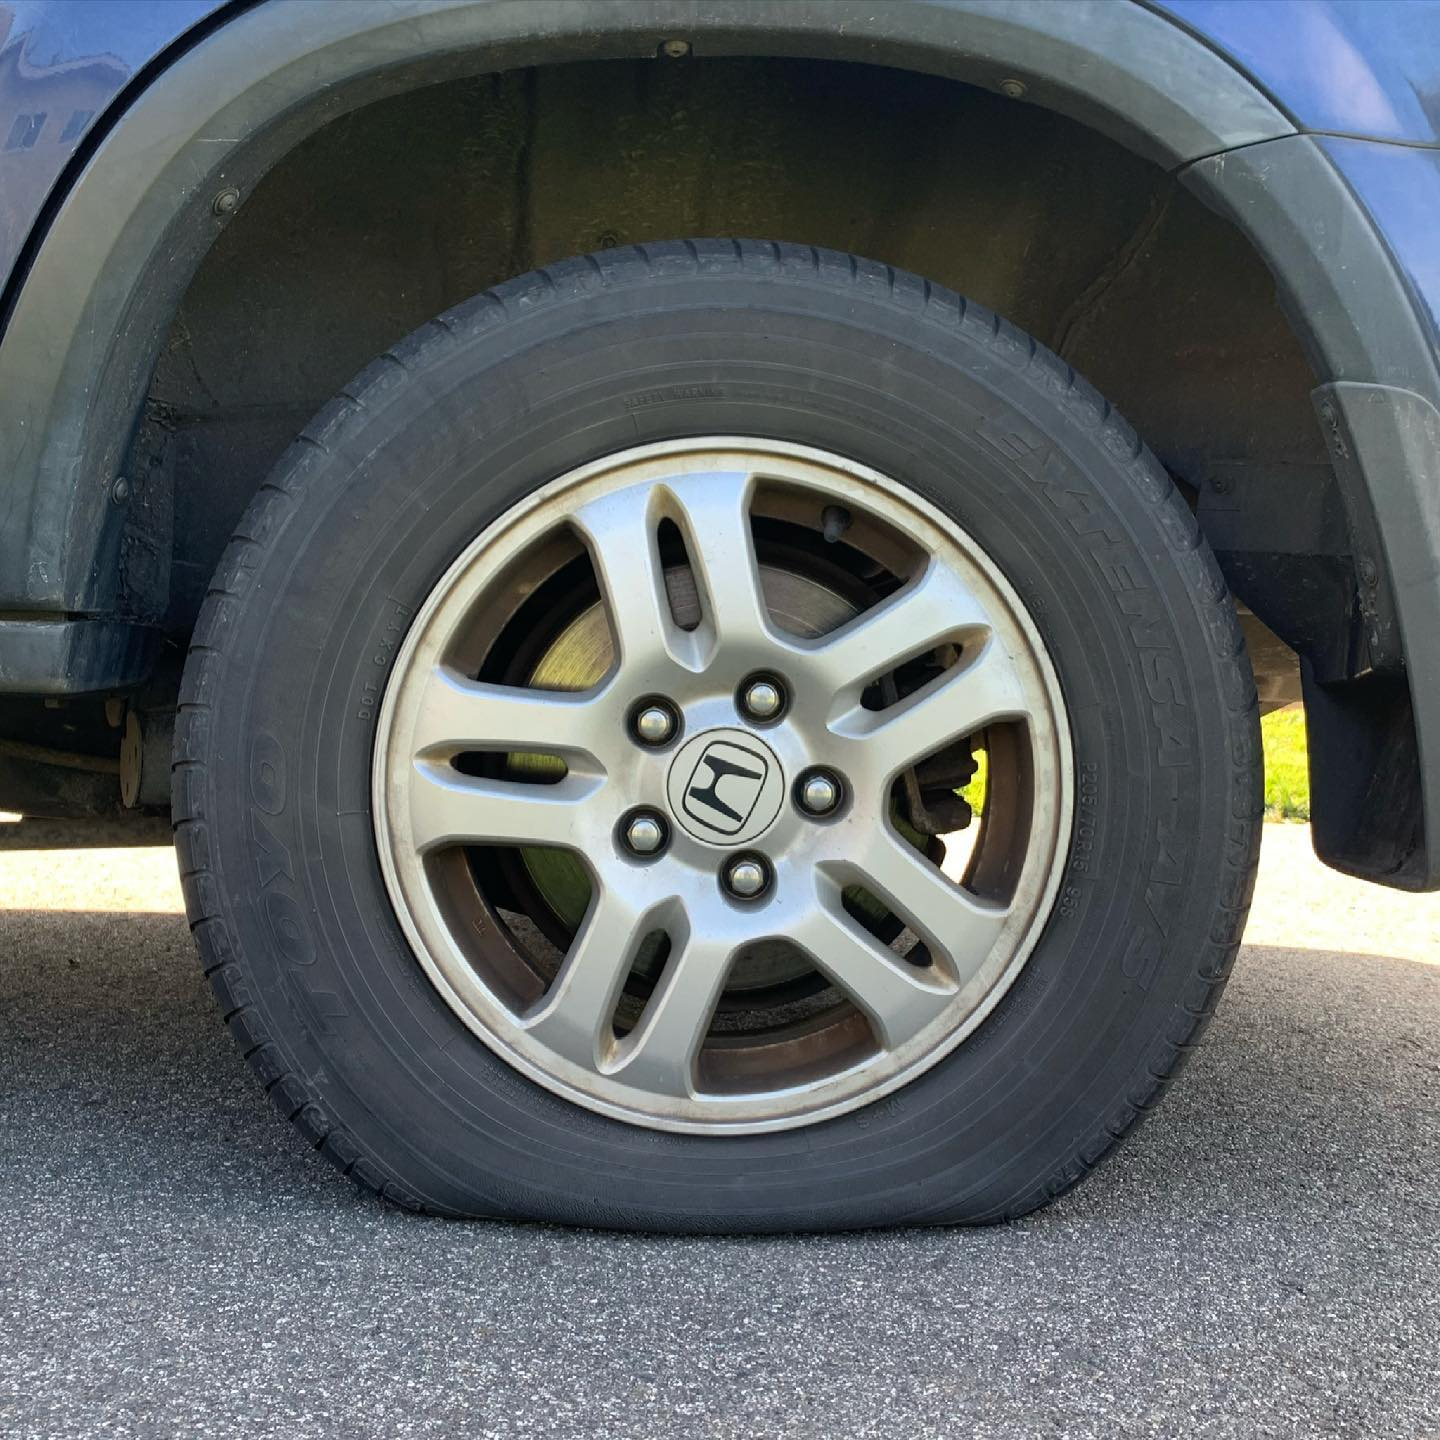 Who needs a round tire any way? It takes real skill to drive on a flat spot. #happysaturday #flattire